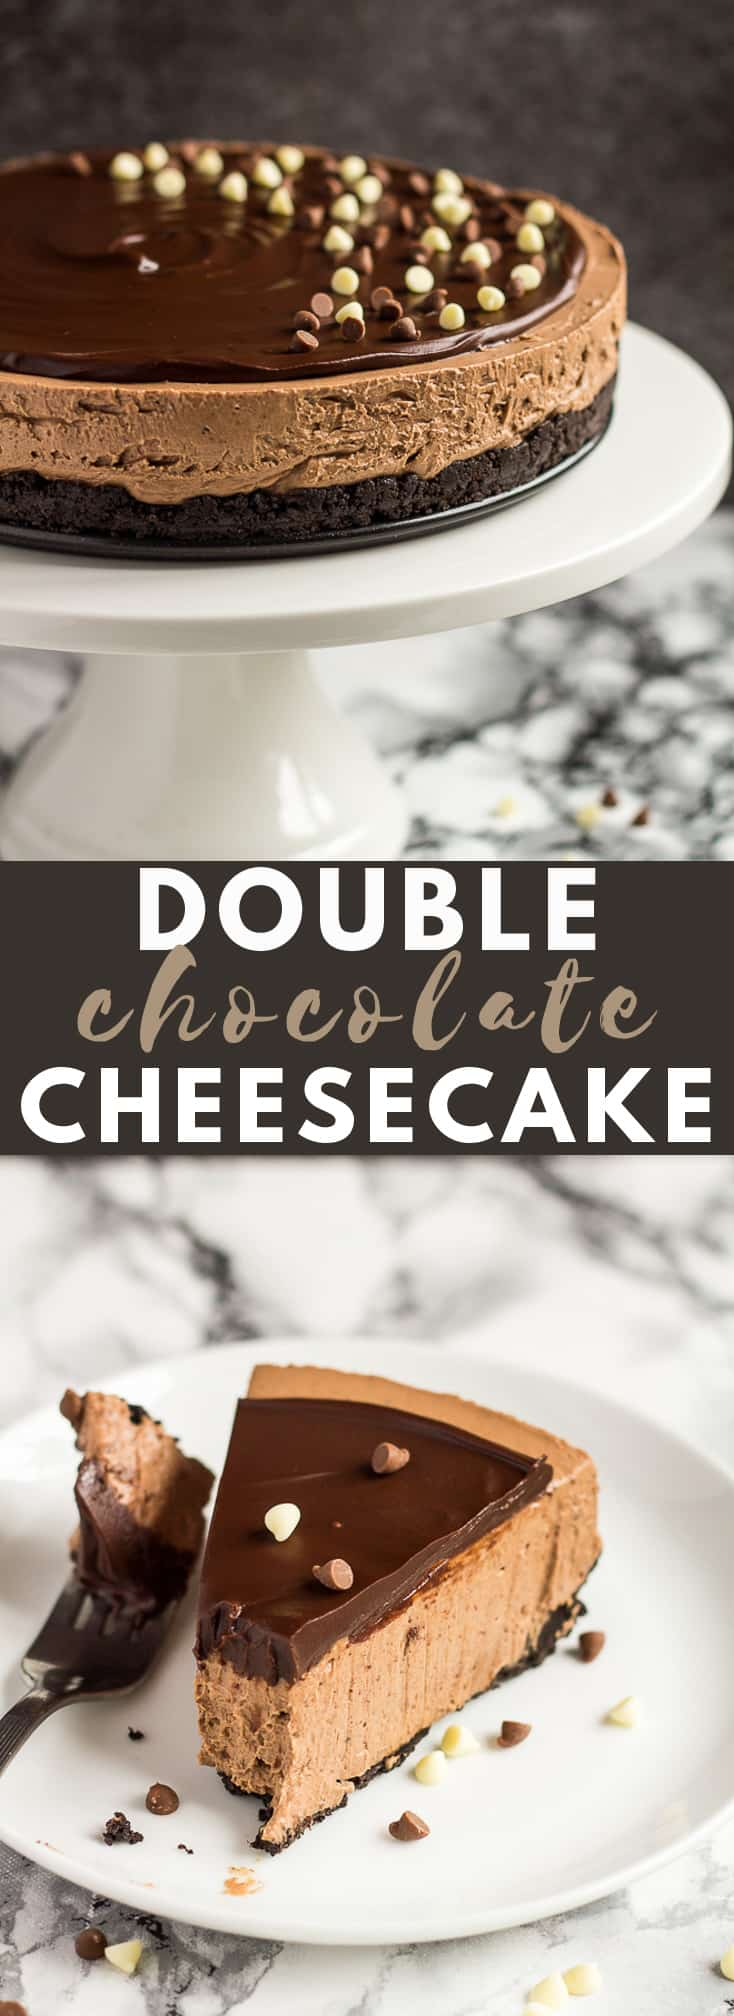 No-Bake Double Chocolate Cheesecake - Deliciously creamy NO-BAKE chocolate cheesecake with an Oreo crust, and topped with chocolate ganache! #chocolate #cheesecake #nobake #cheesecakerecipes